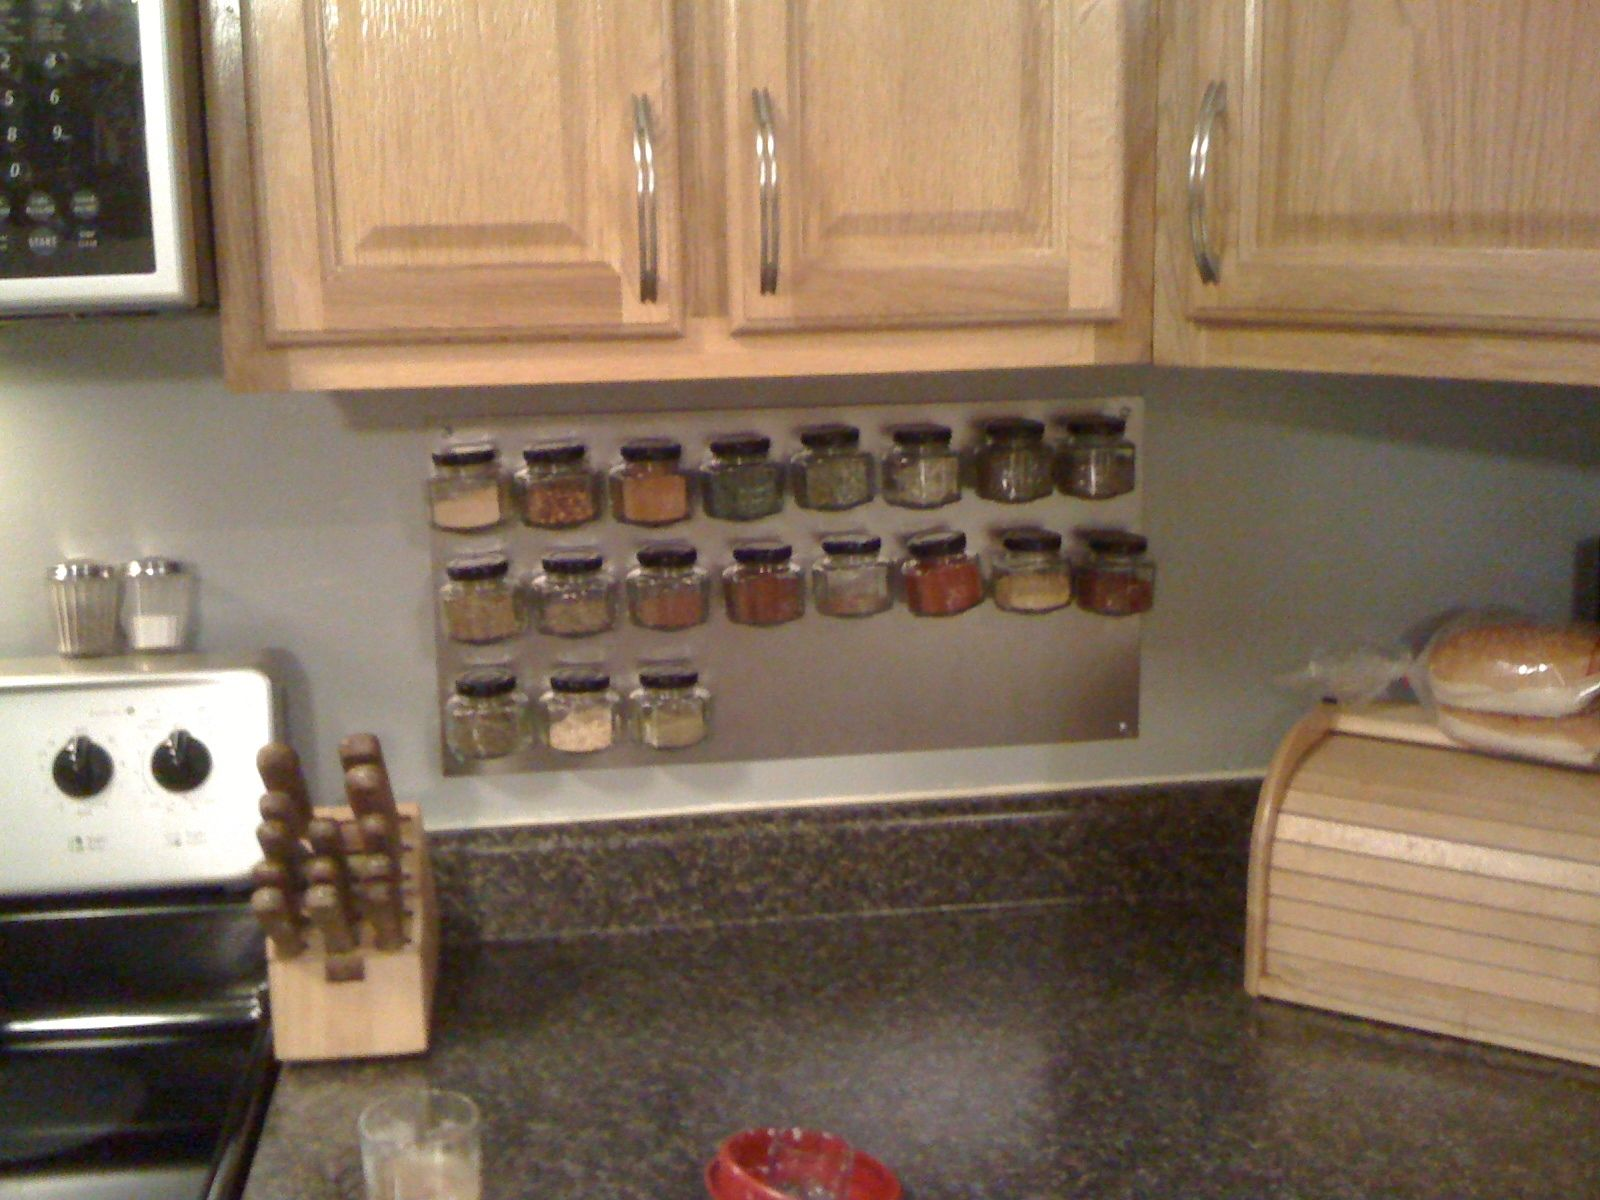 Diy Magnetic Spice Rack Magnetic Spice Racks Wall Mount